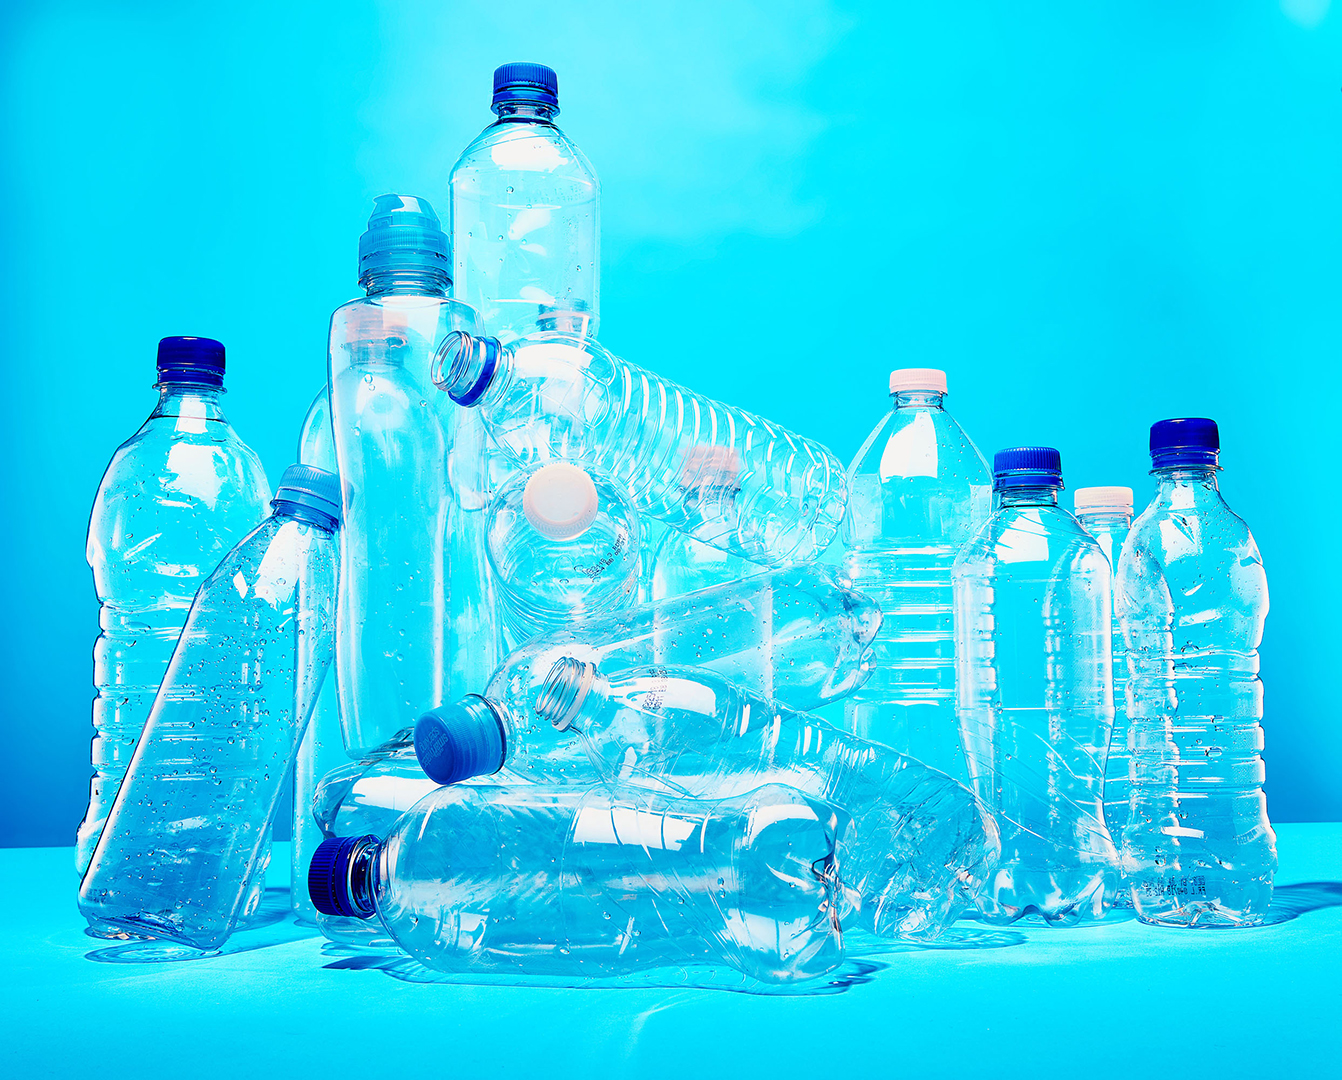 plastic bottles in a pile against blue background